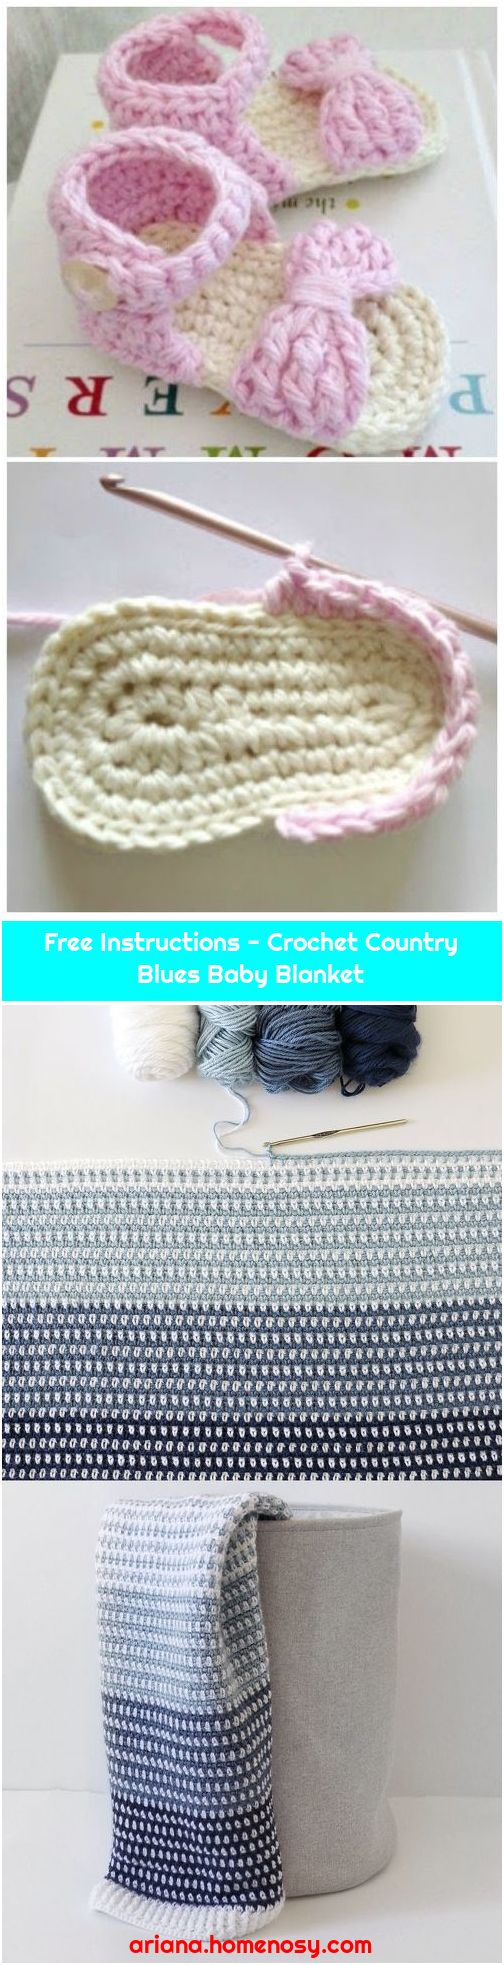 Free Instructions - Crochet Country Blues Baby Blanket